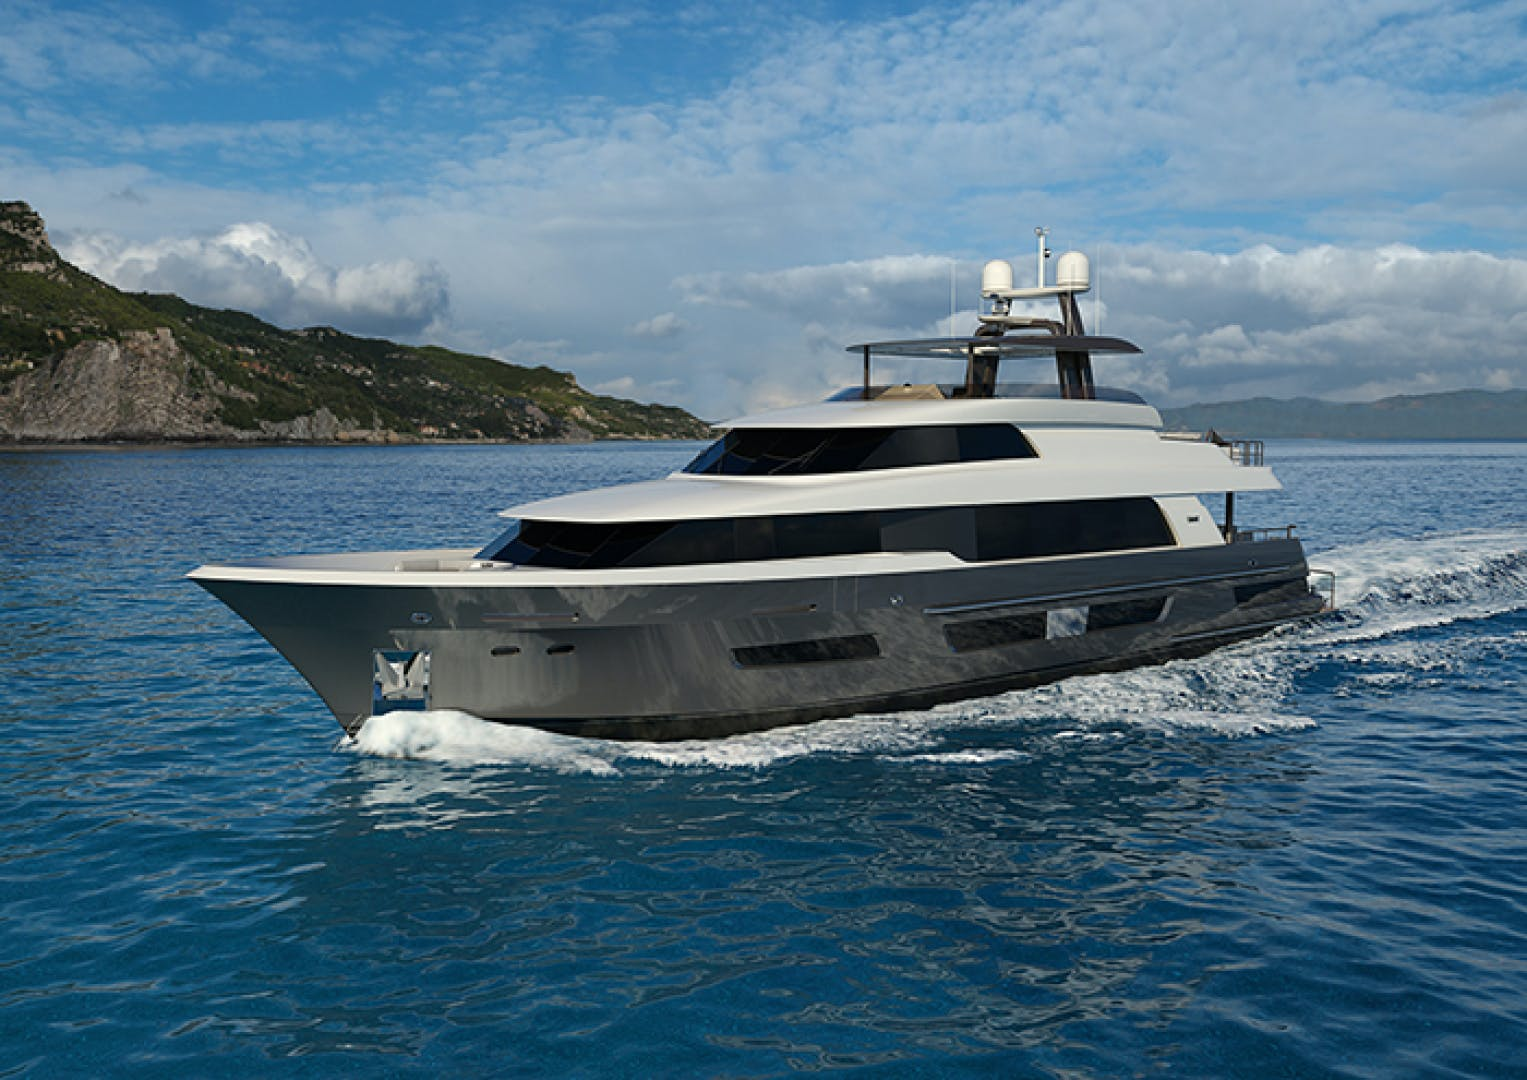 2022 Crescent 110' 110 Fast Pilothouse Yacht CRESCENT 110 | Picture 1 of 13